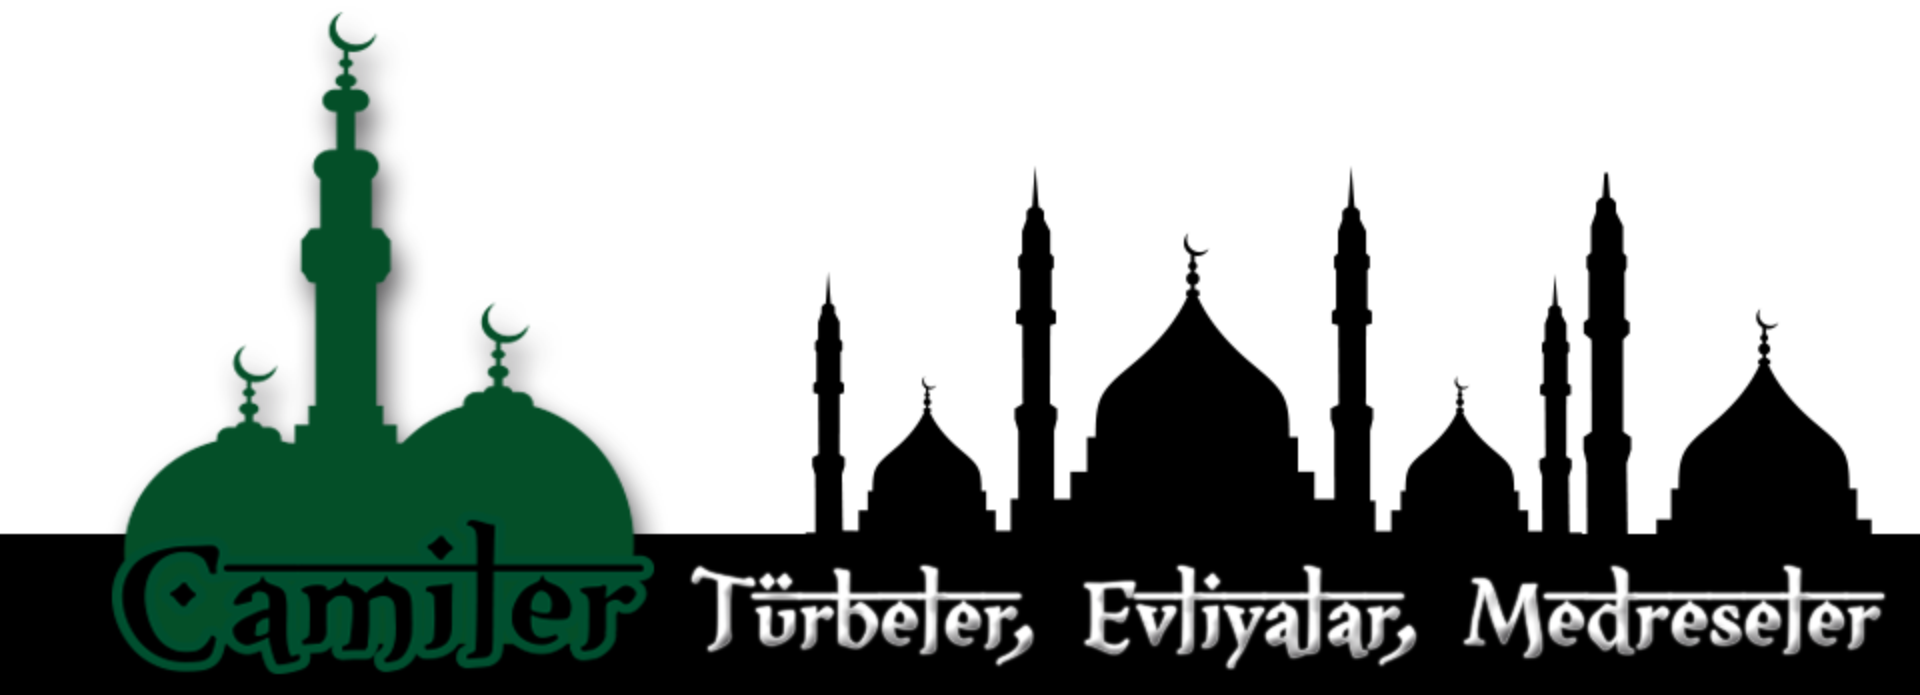 cropped-cropped-logo2-1.png